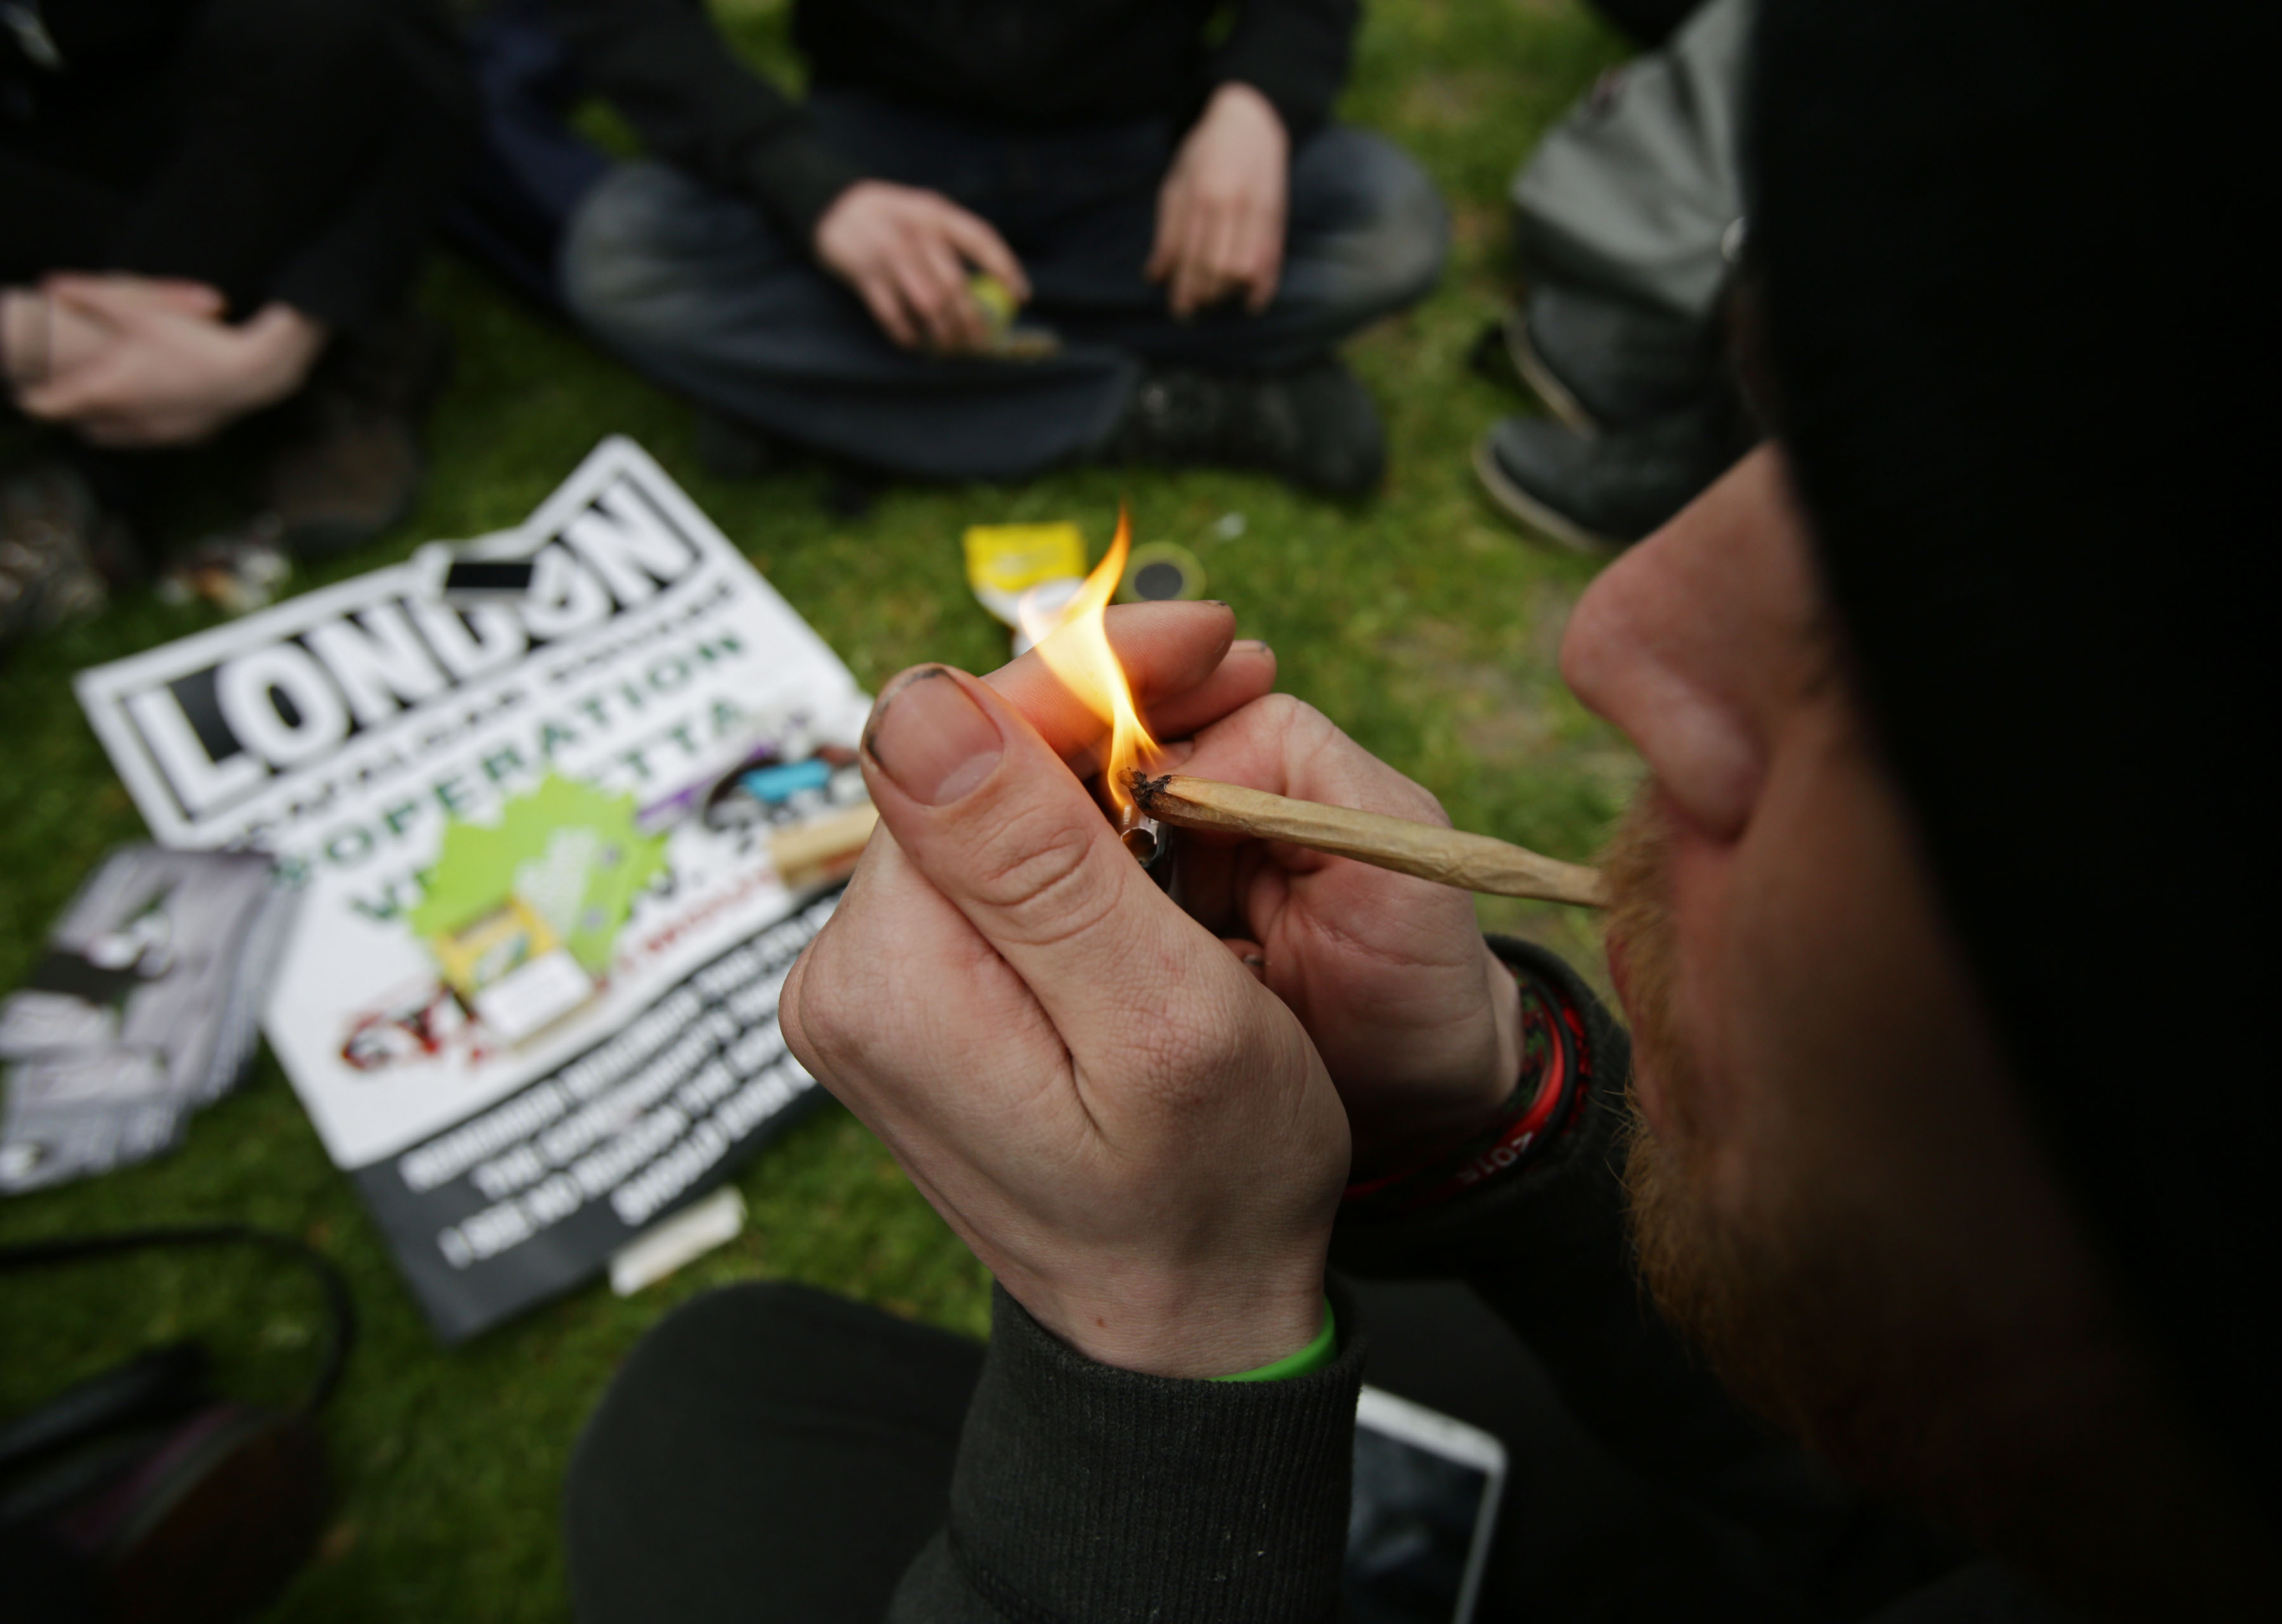 A man smoking at the '420 Celebration' pro-cannabis event